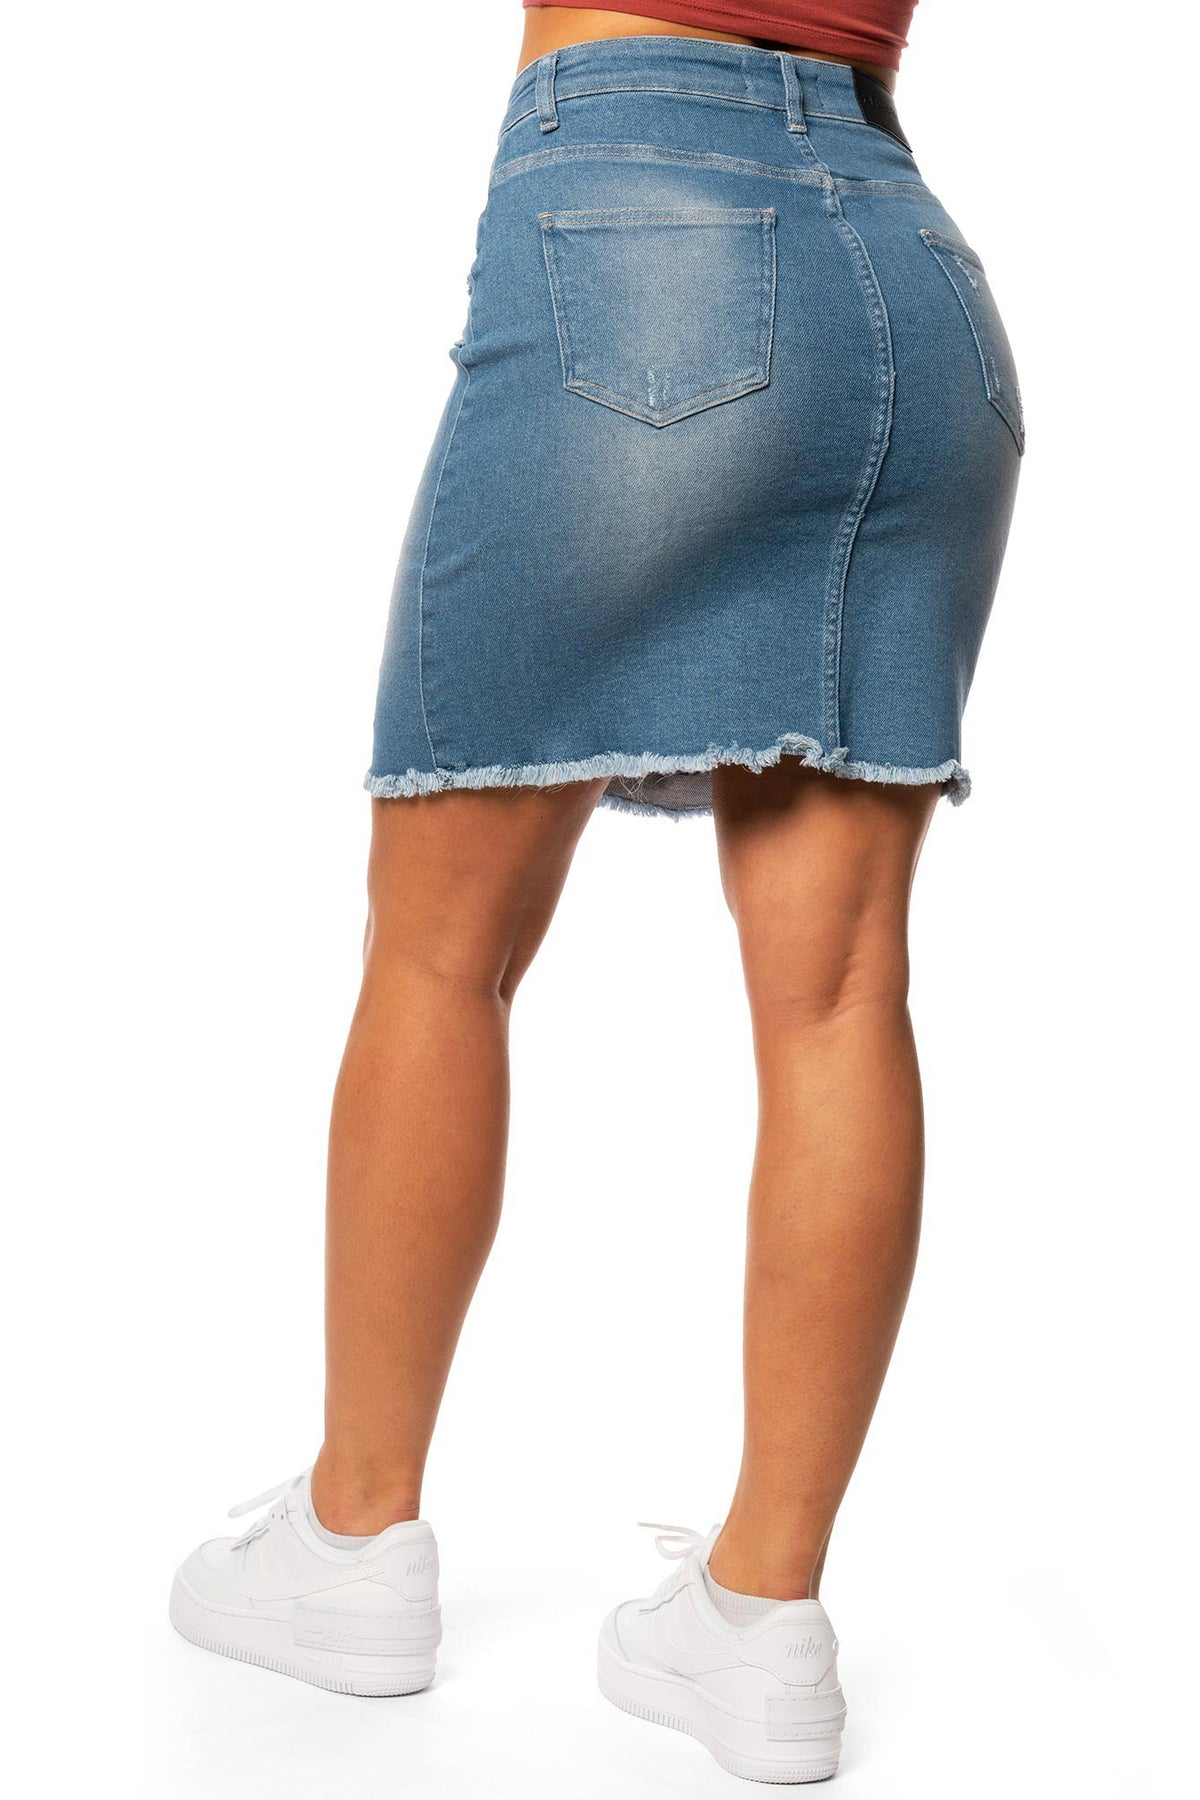 Womens Denim Ripped High Waisted Skirt - Azure Blue